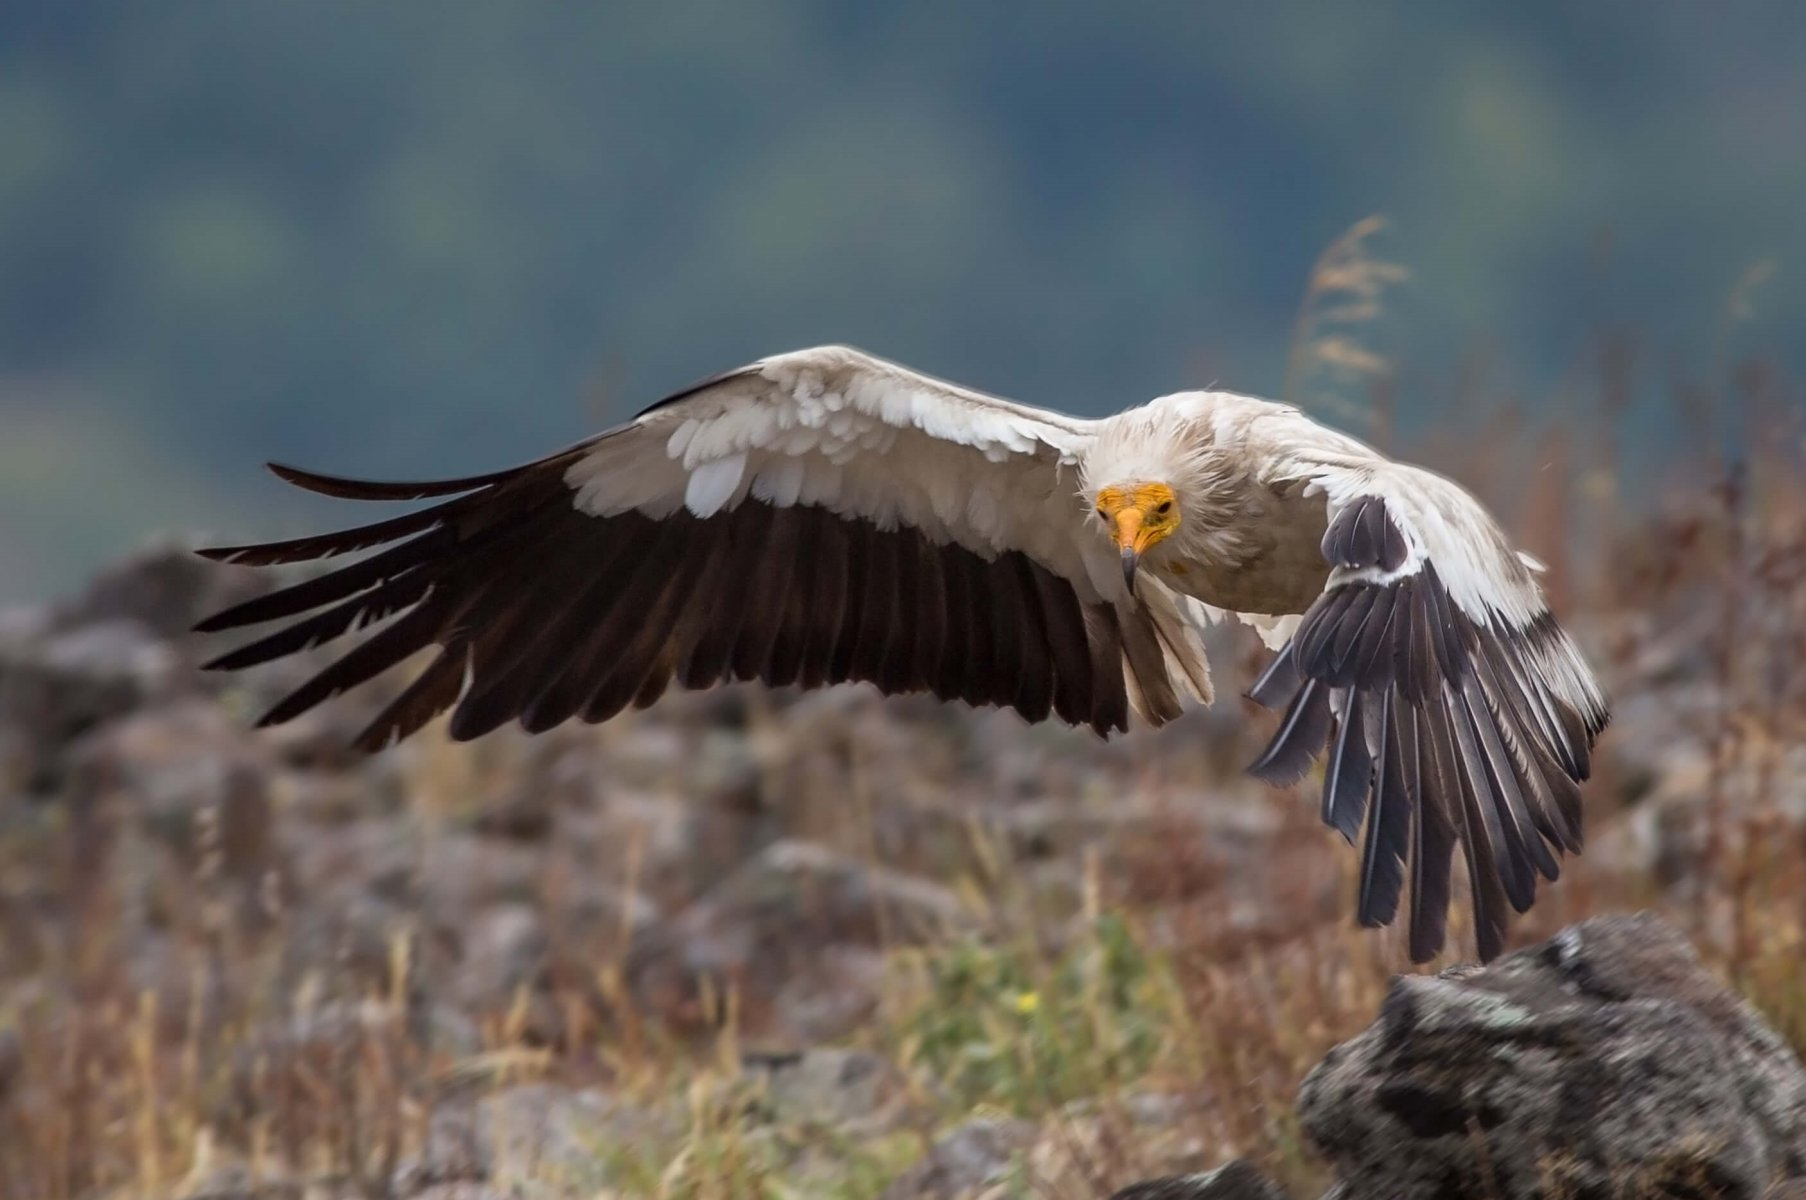 The Egyptian Vulture (Endangered) will also benefit from this new ruling © Ivostyle / Shutterstock